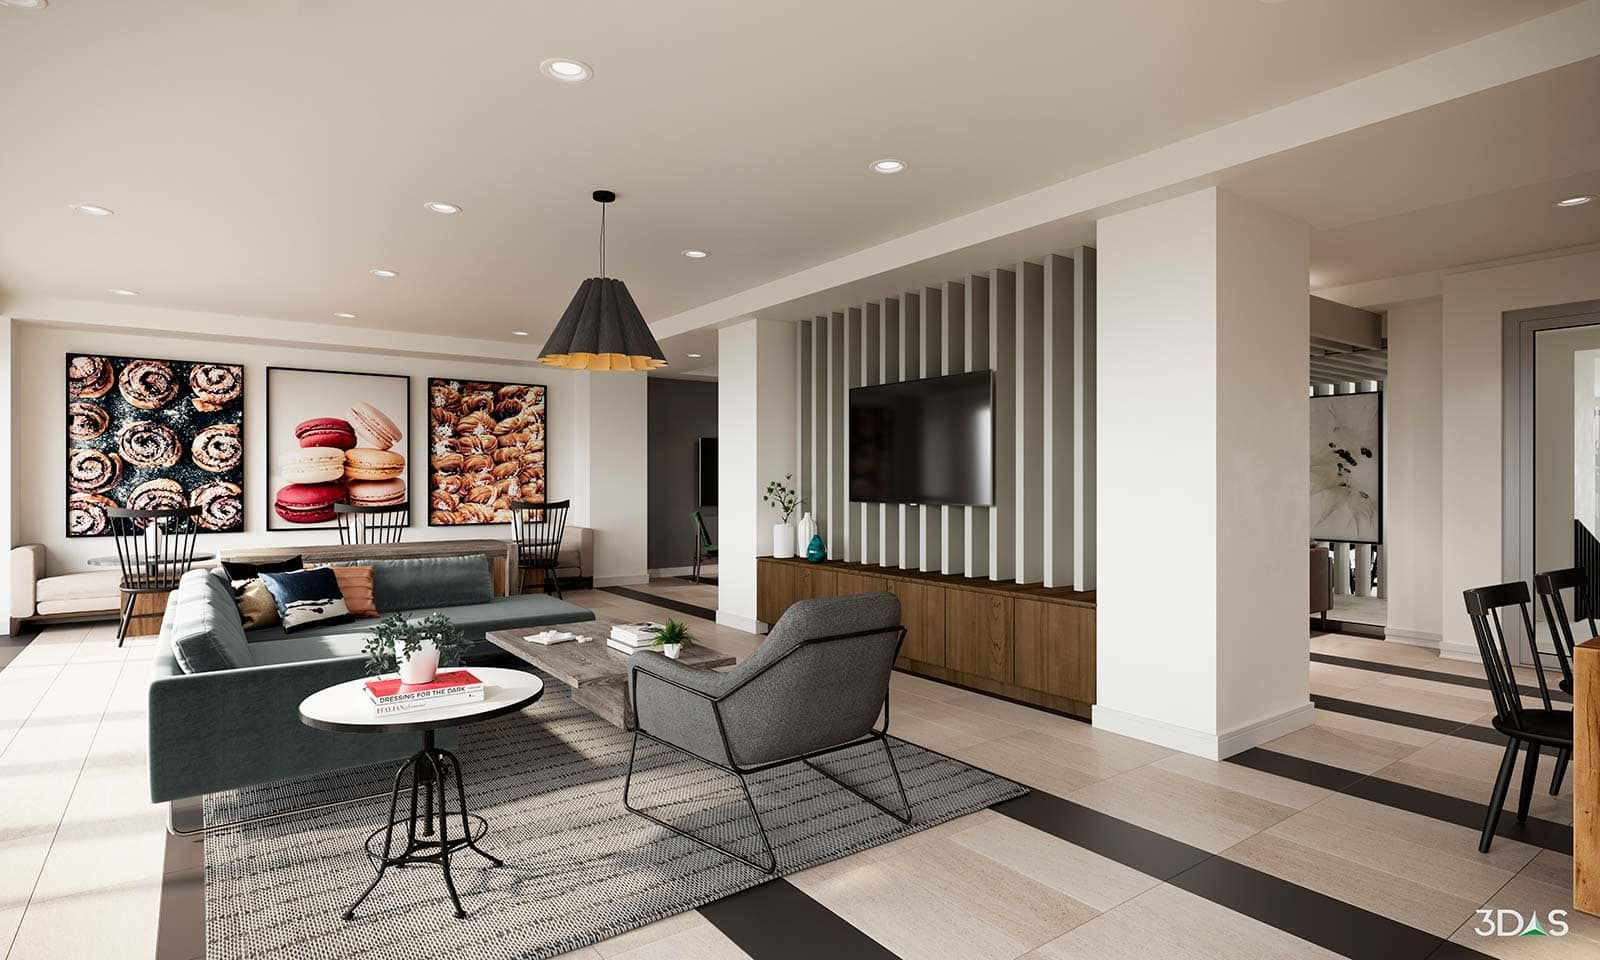 Clubroom With Partition Wall Partition Wall Home Decor Home